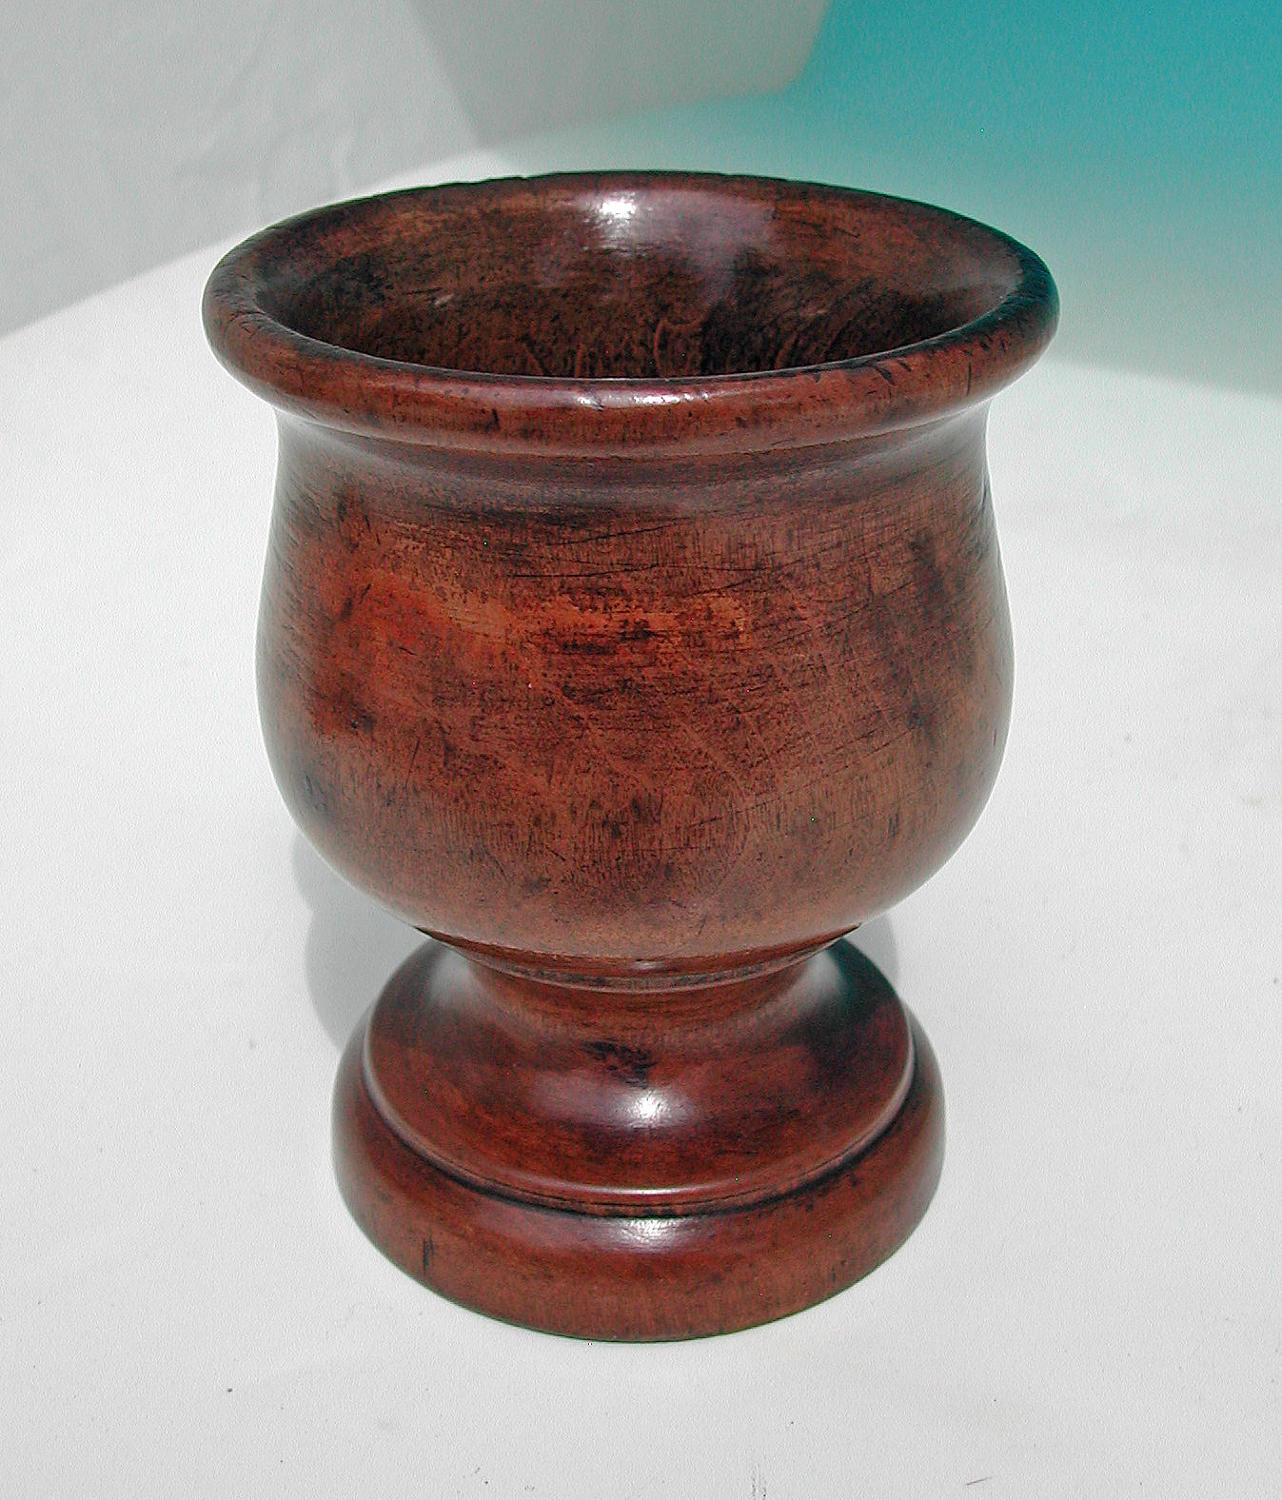 Early 19thc Treen Sycamore Turned Master Salt. English. C1800-20.